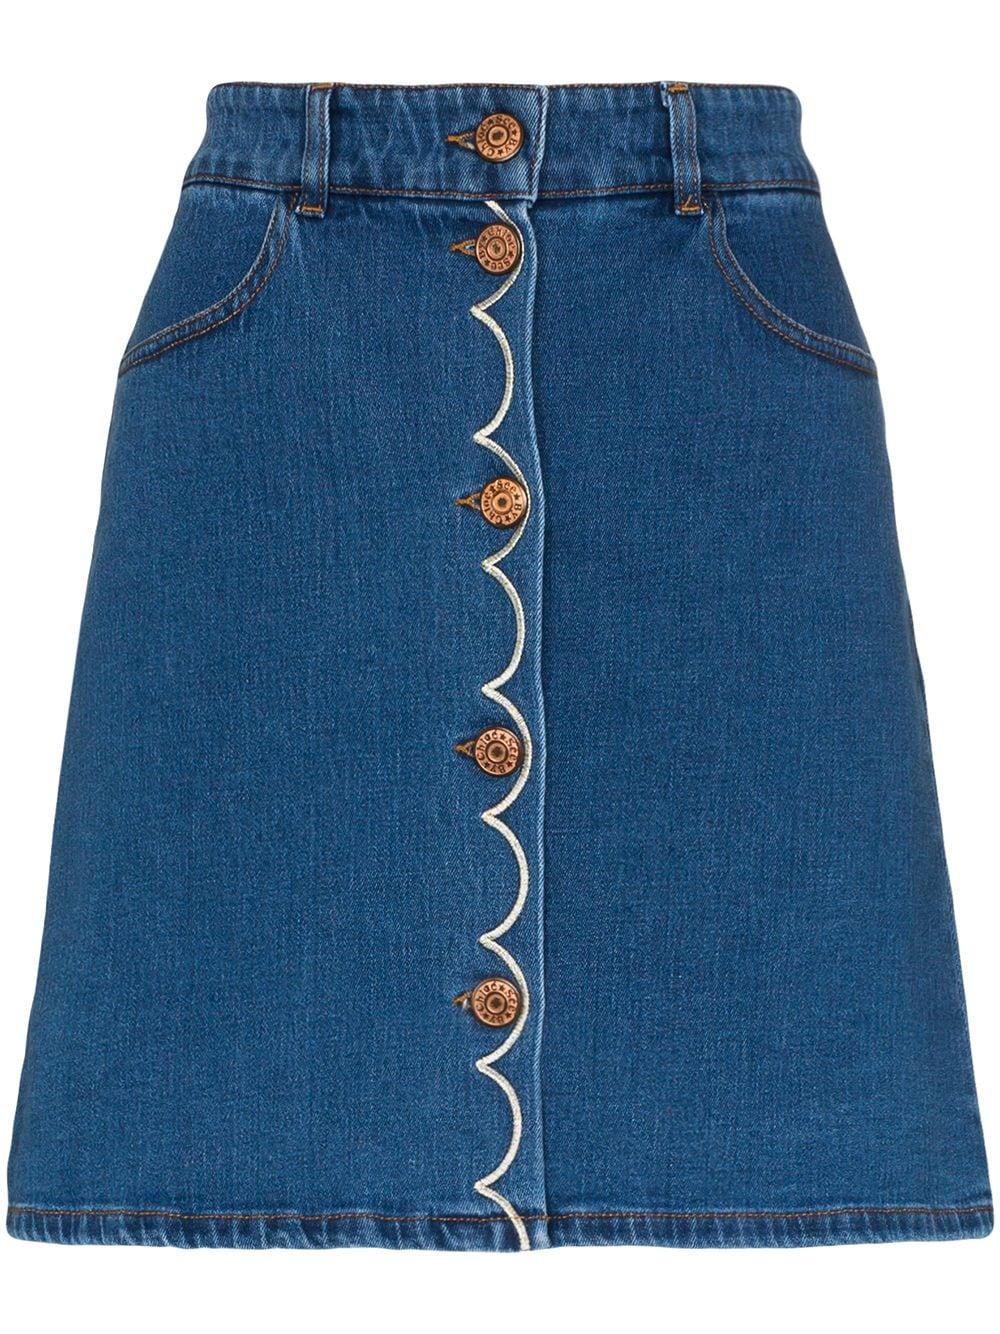 Denim Skirt With Embroideries